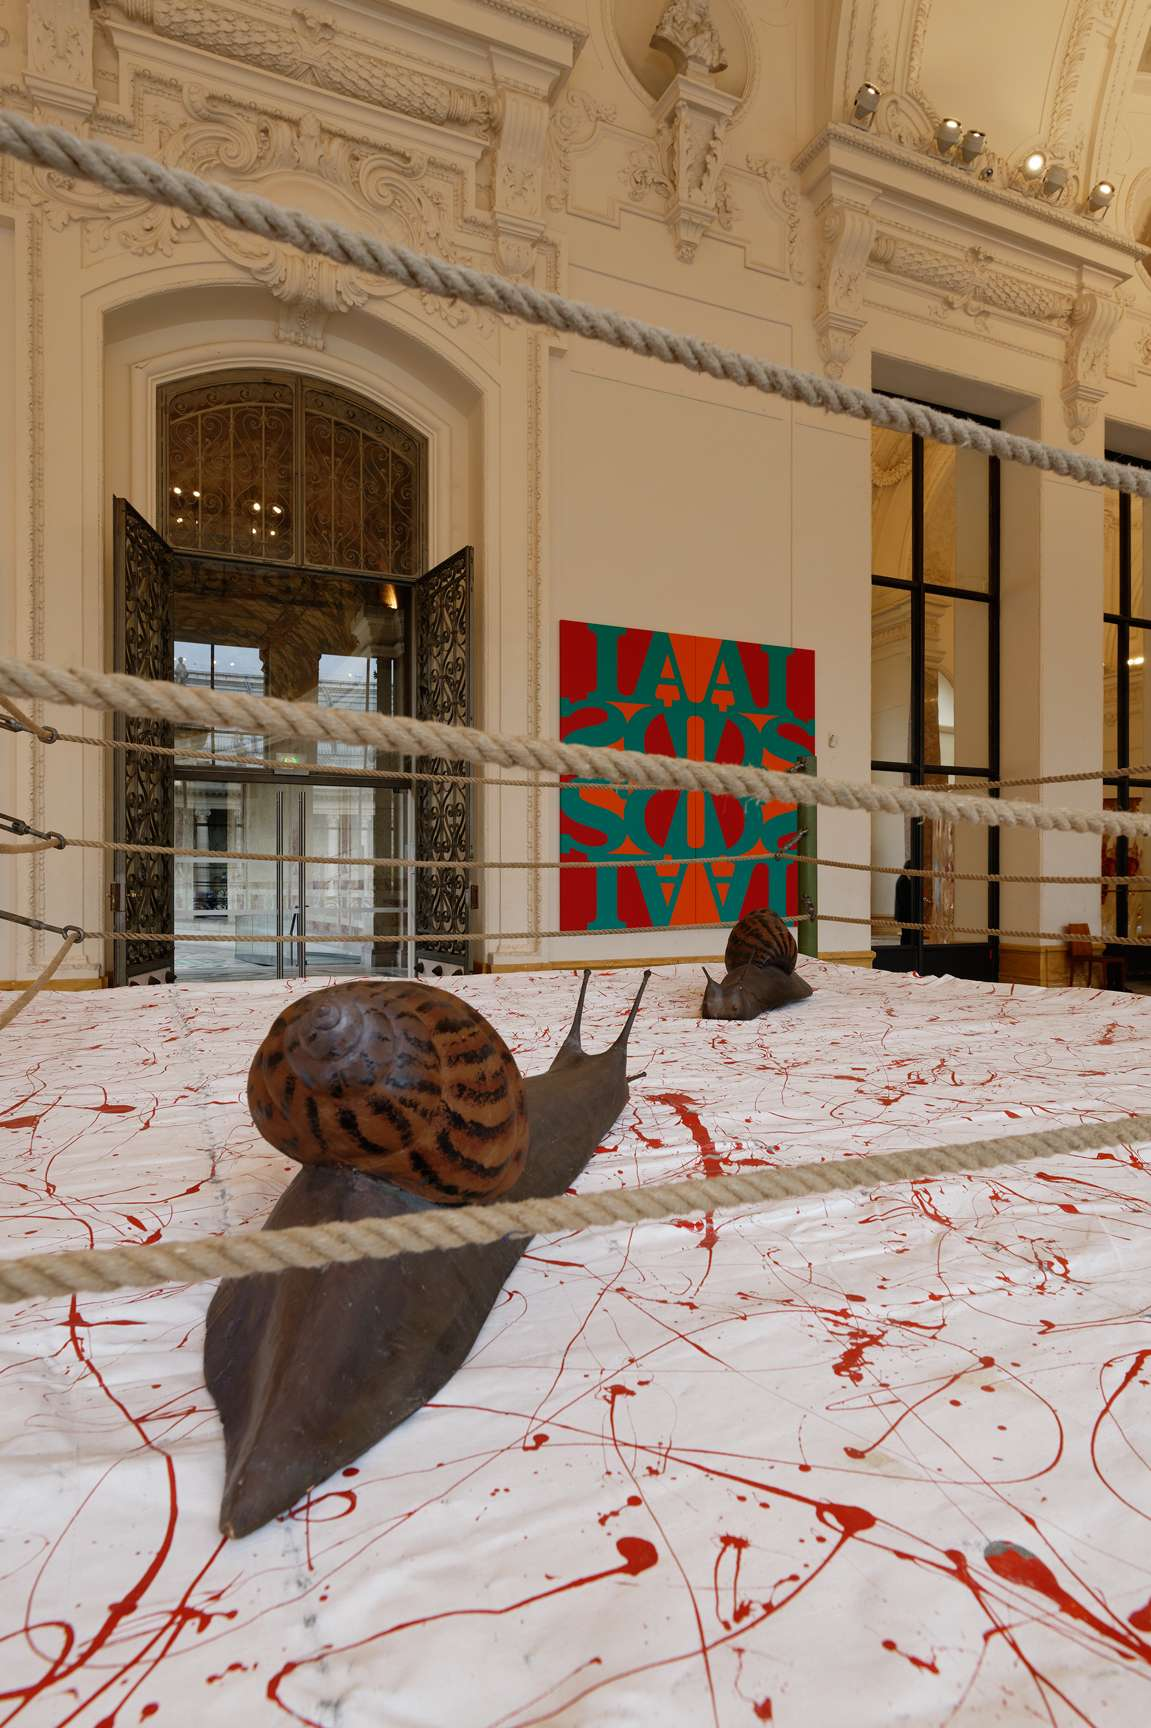 Fiac Projects, Paris (FR)Françoise Pétrovitch, Abraham Poincheval & Présence Panchounette 15 — 20 octobre 2019